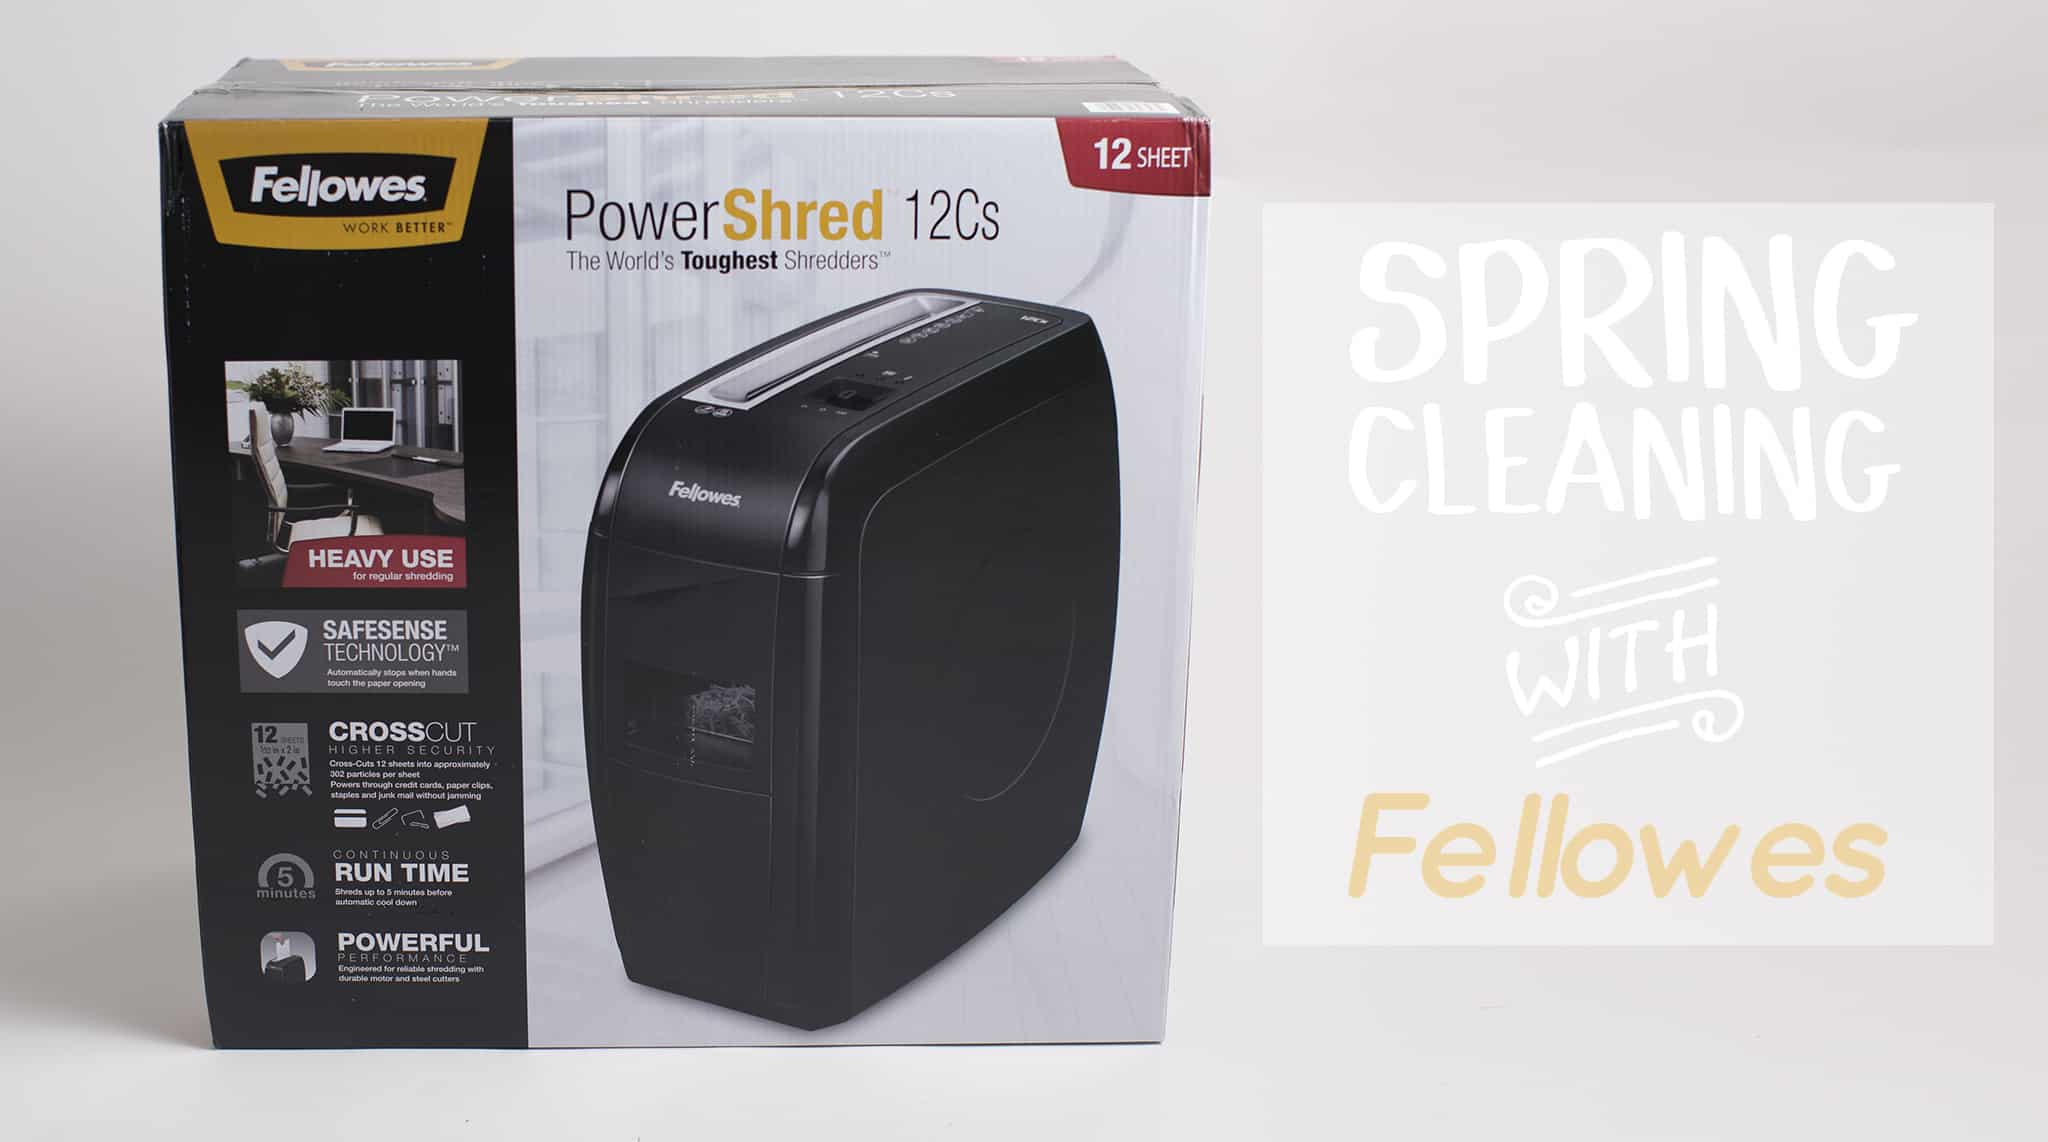 Spring cleaning with Fellowes PowerShredder - #WorkBetterWithFellowes #AD